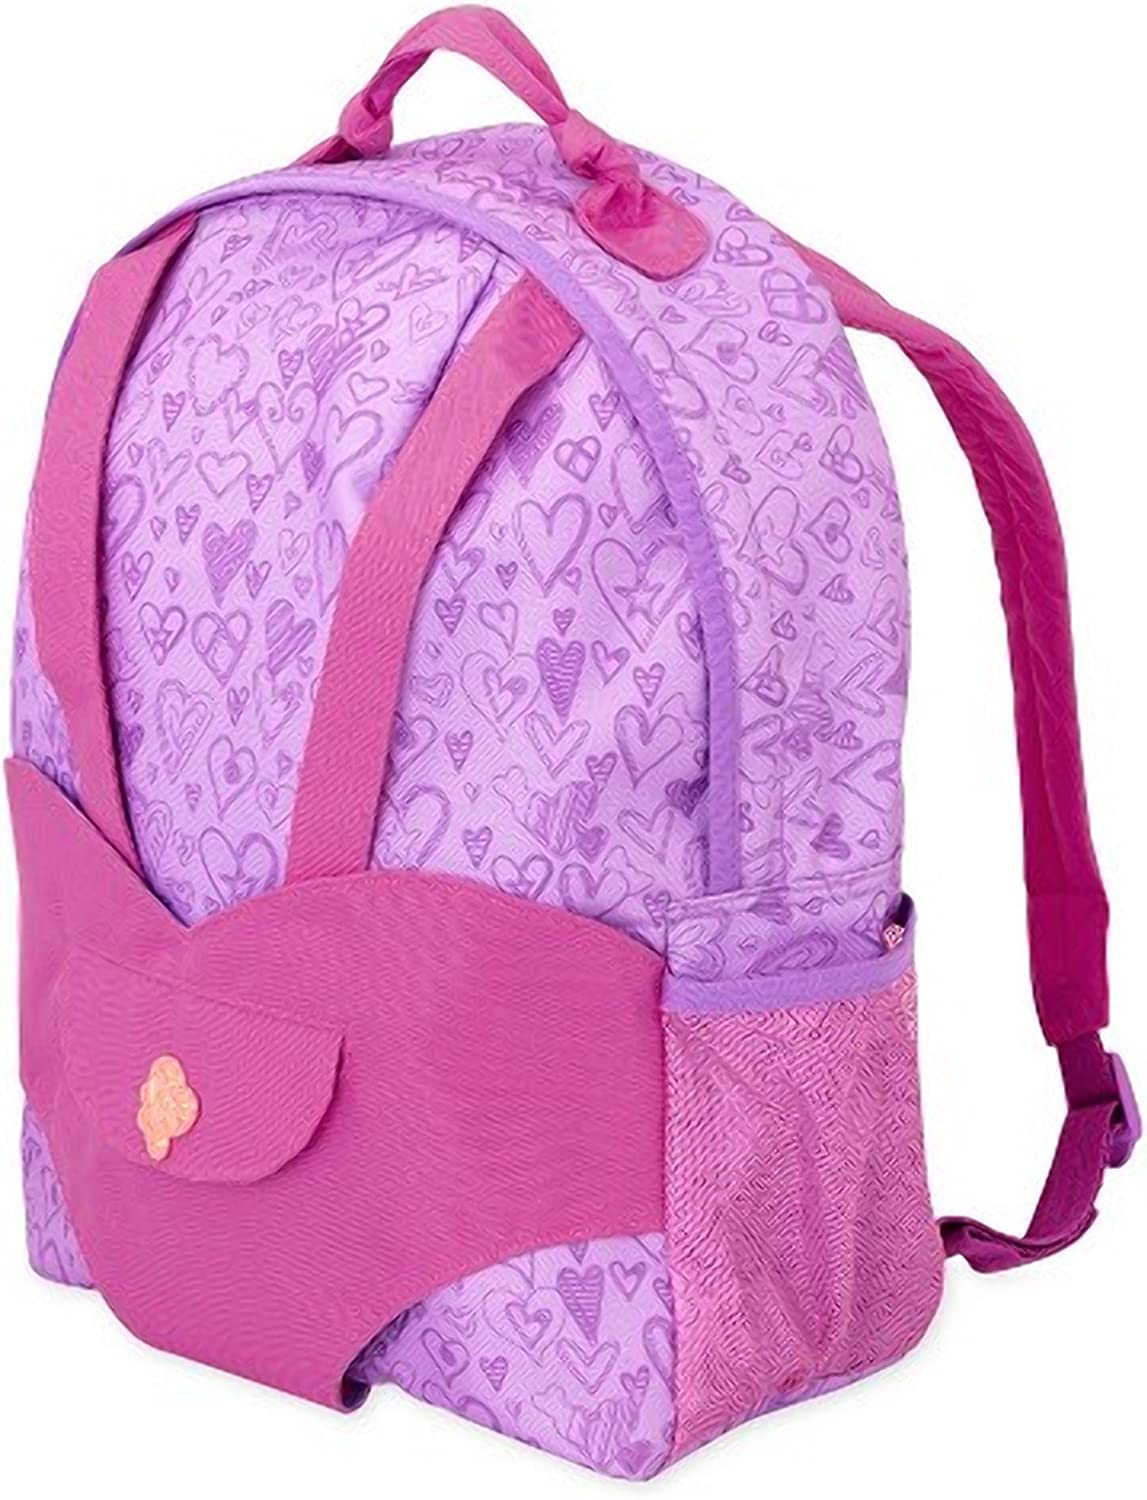 Our Generation-Hop On Doll Carrier Knapsack- Toys, Accessories, Backpack for 18 inch Dolls- 3 Years and up